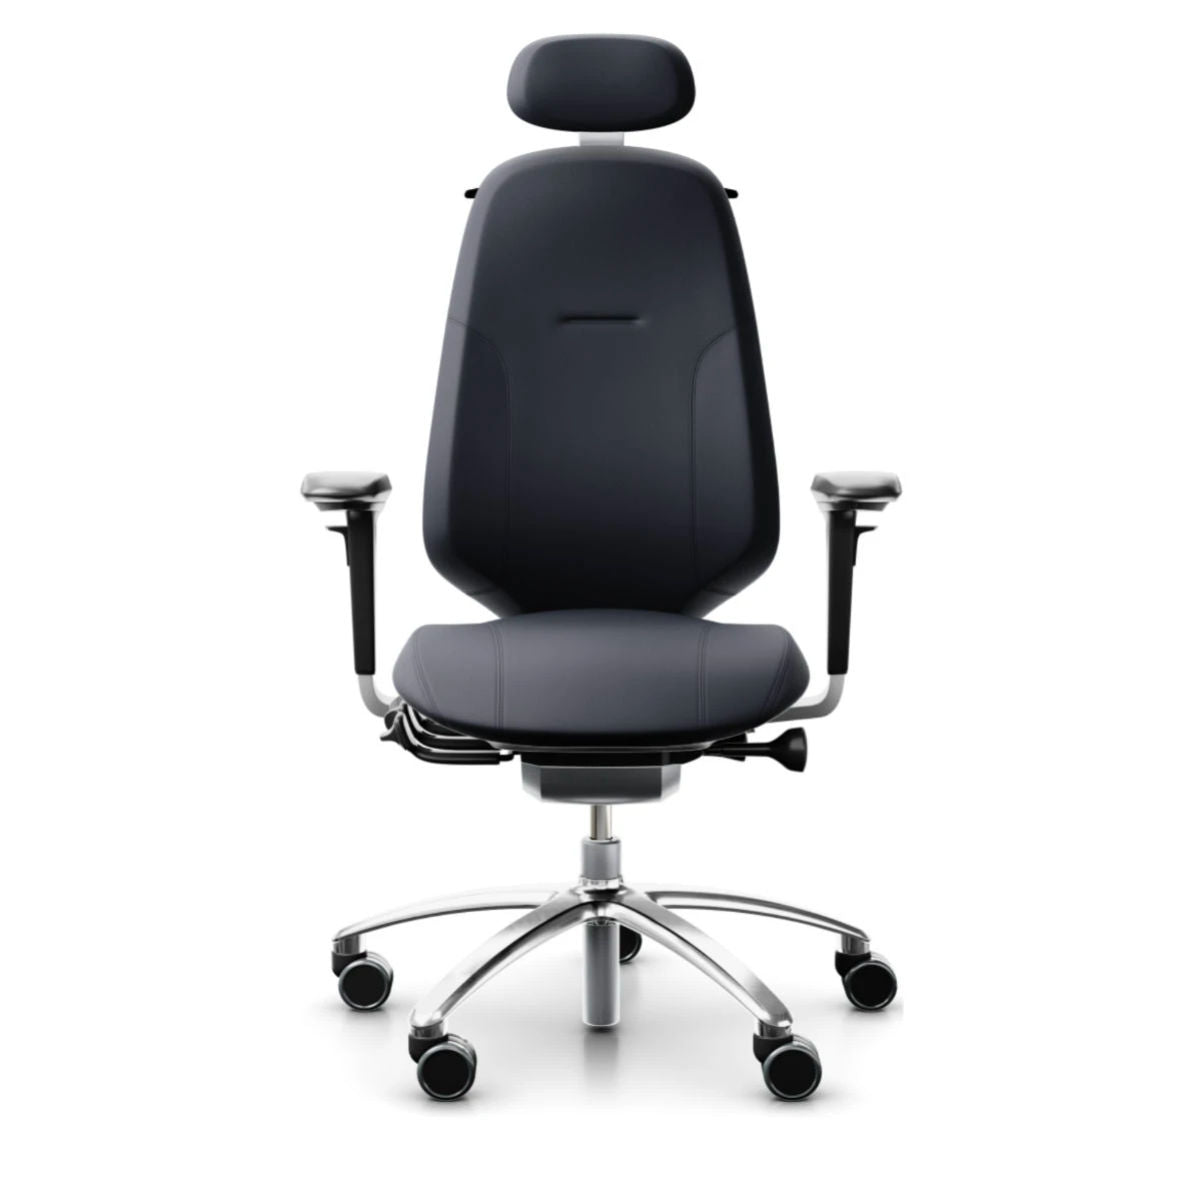 Flokk RH Mereo 300 silver task chair, leather, paloma soft atg55185